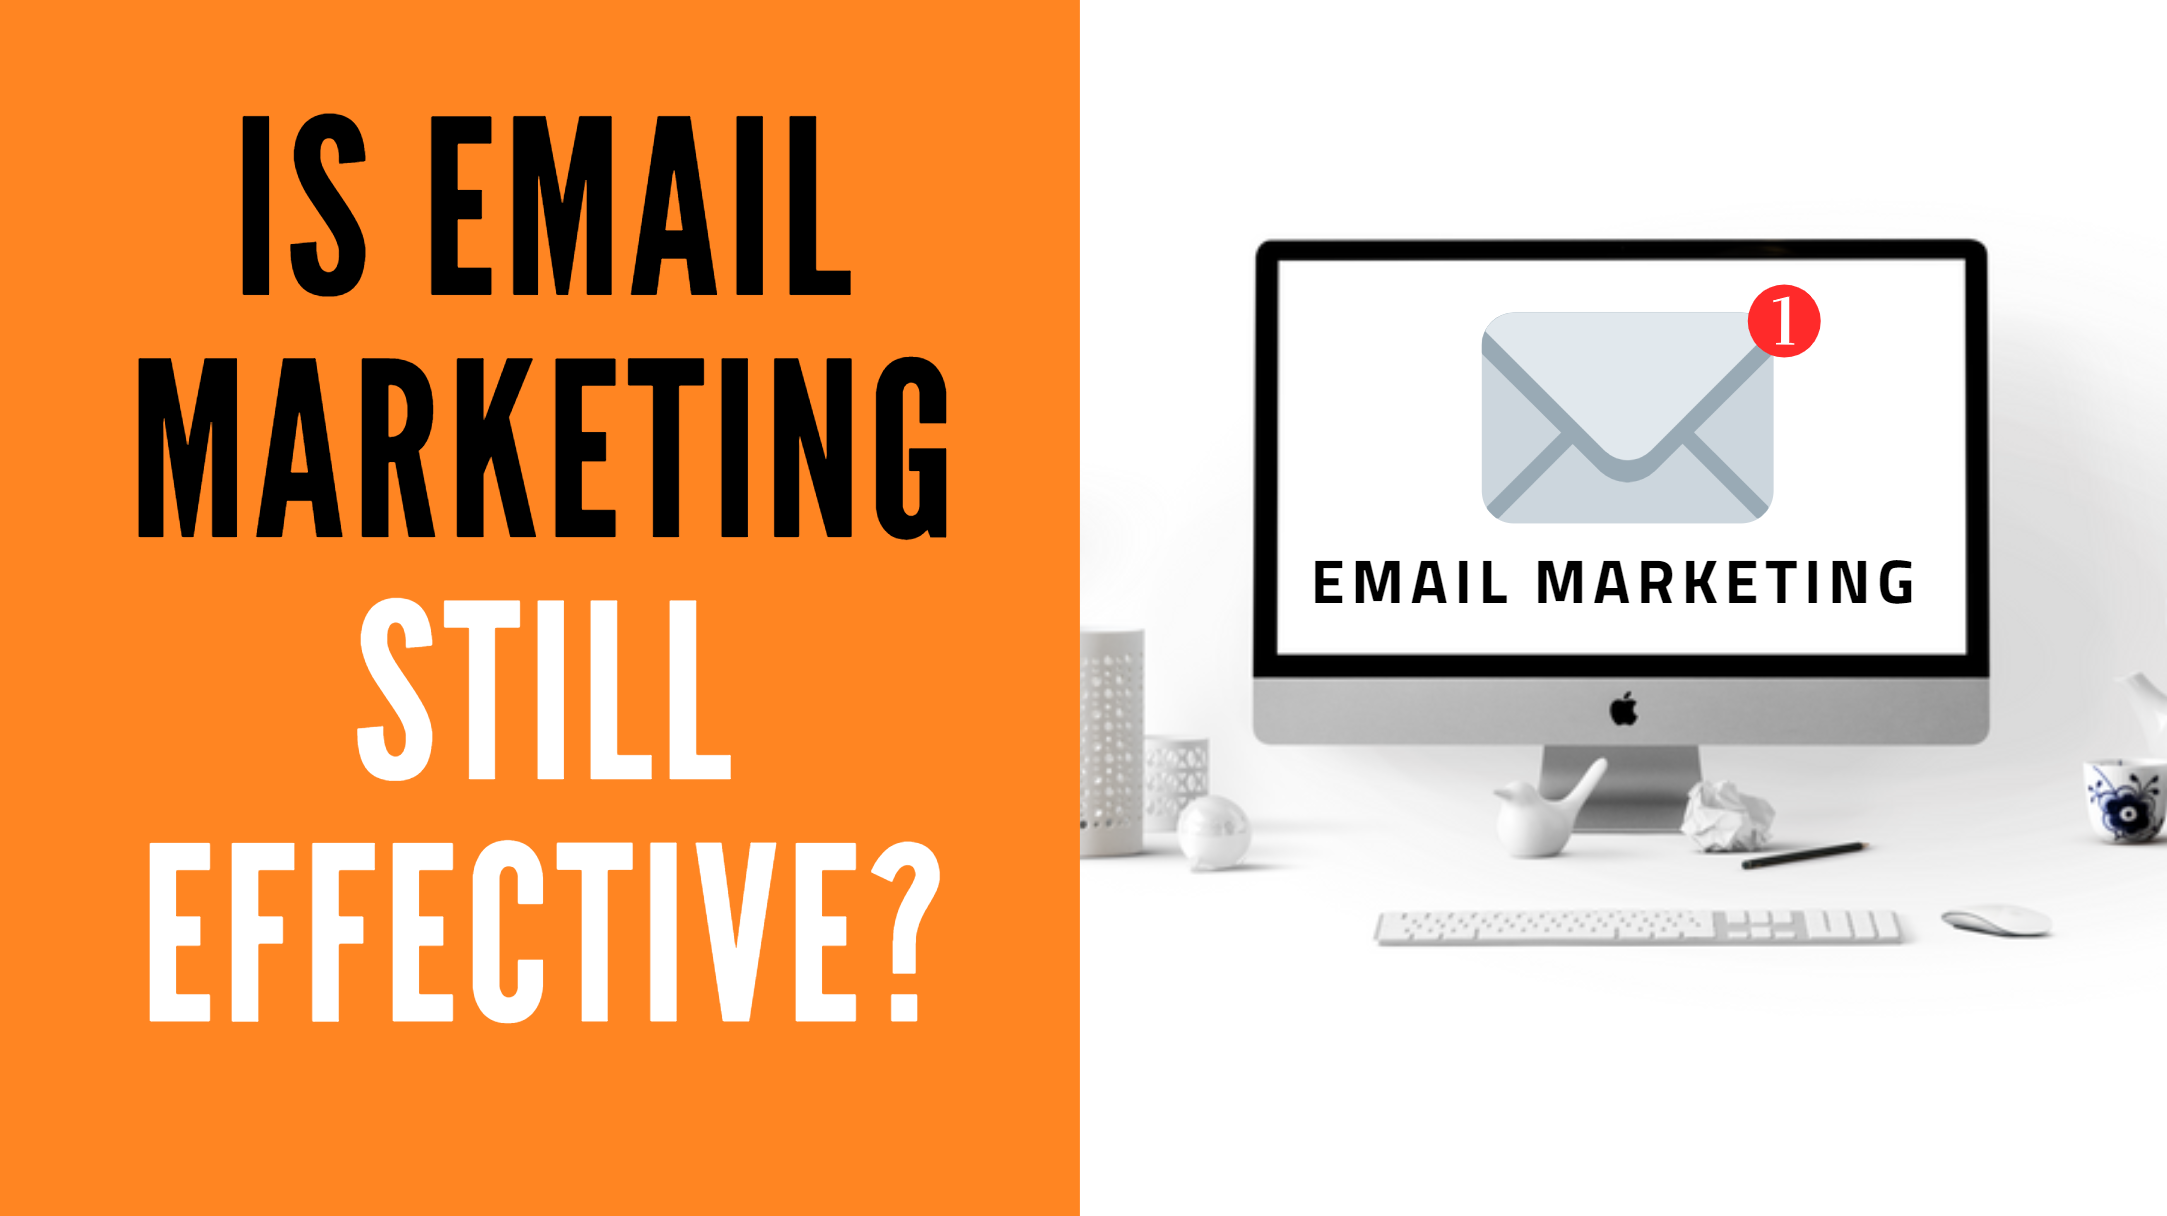 Is Email Marketing Effective?